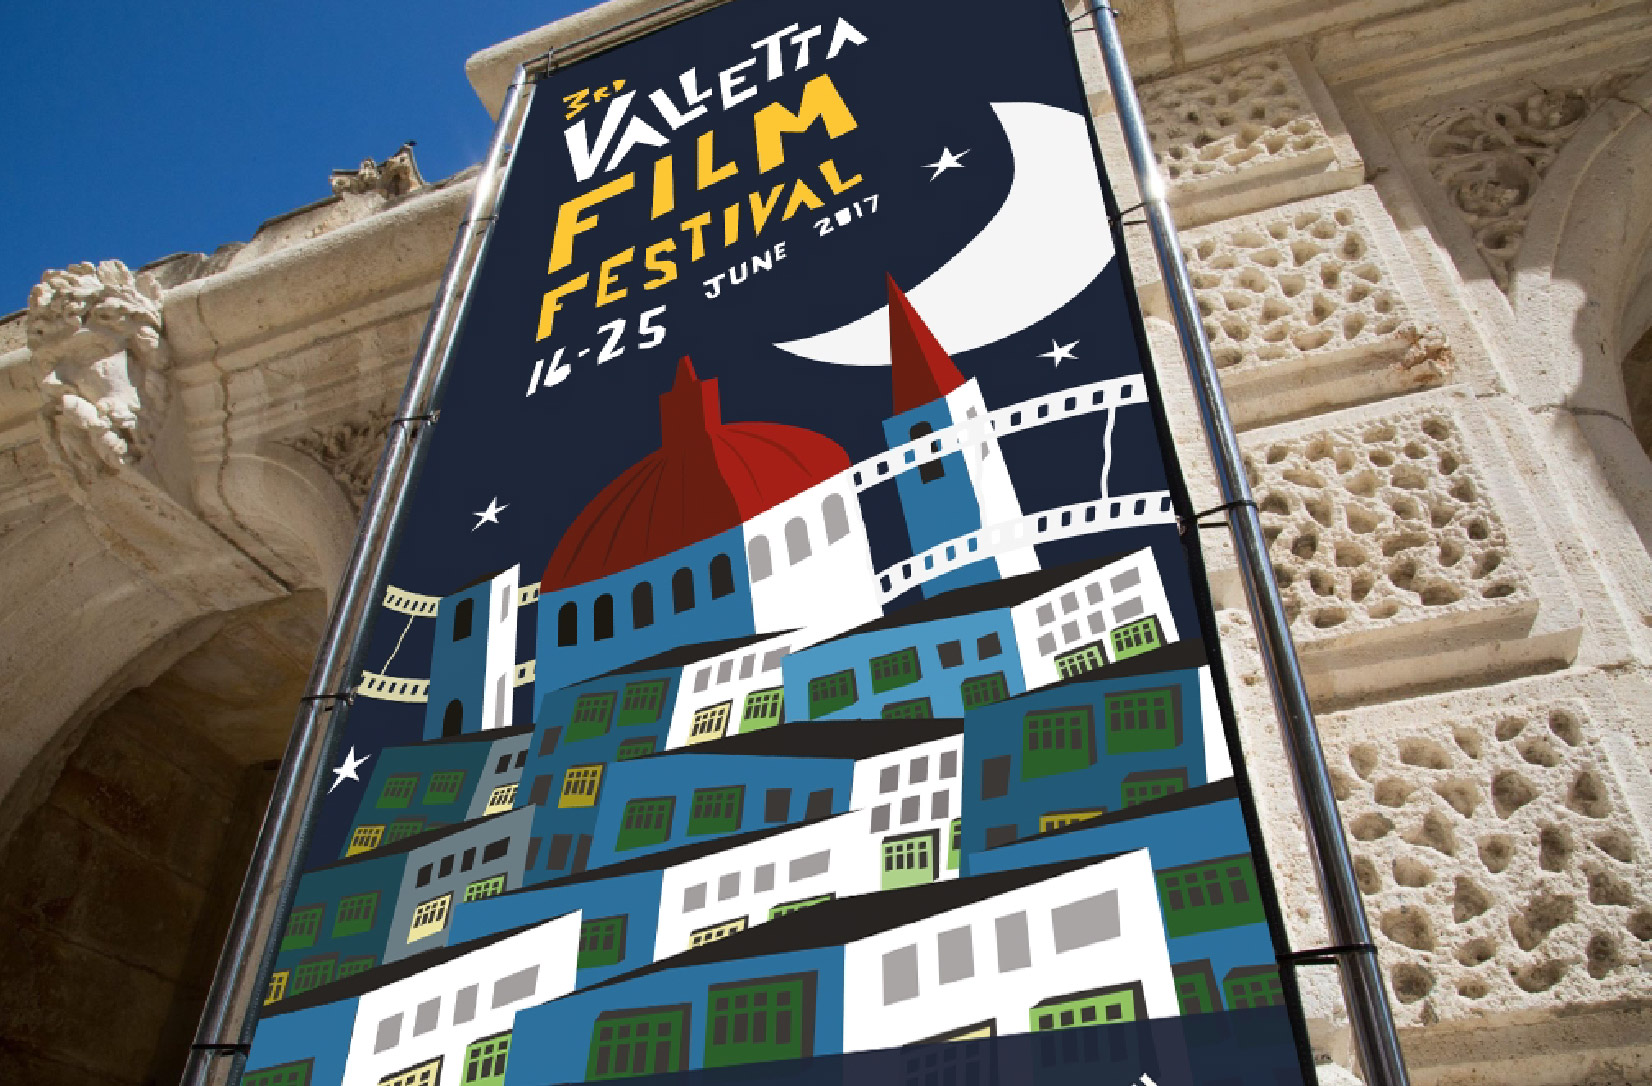 valletta film festival malta general condition design studio belgrade